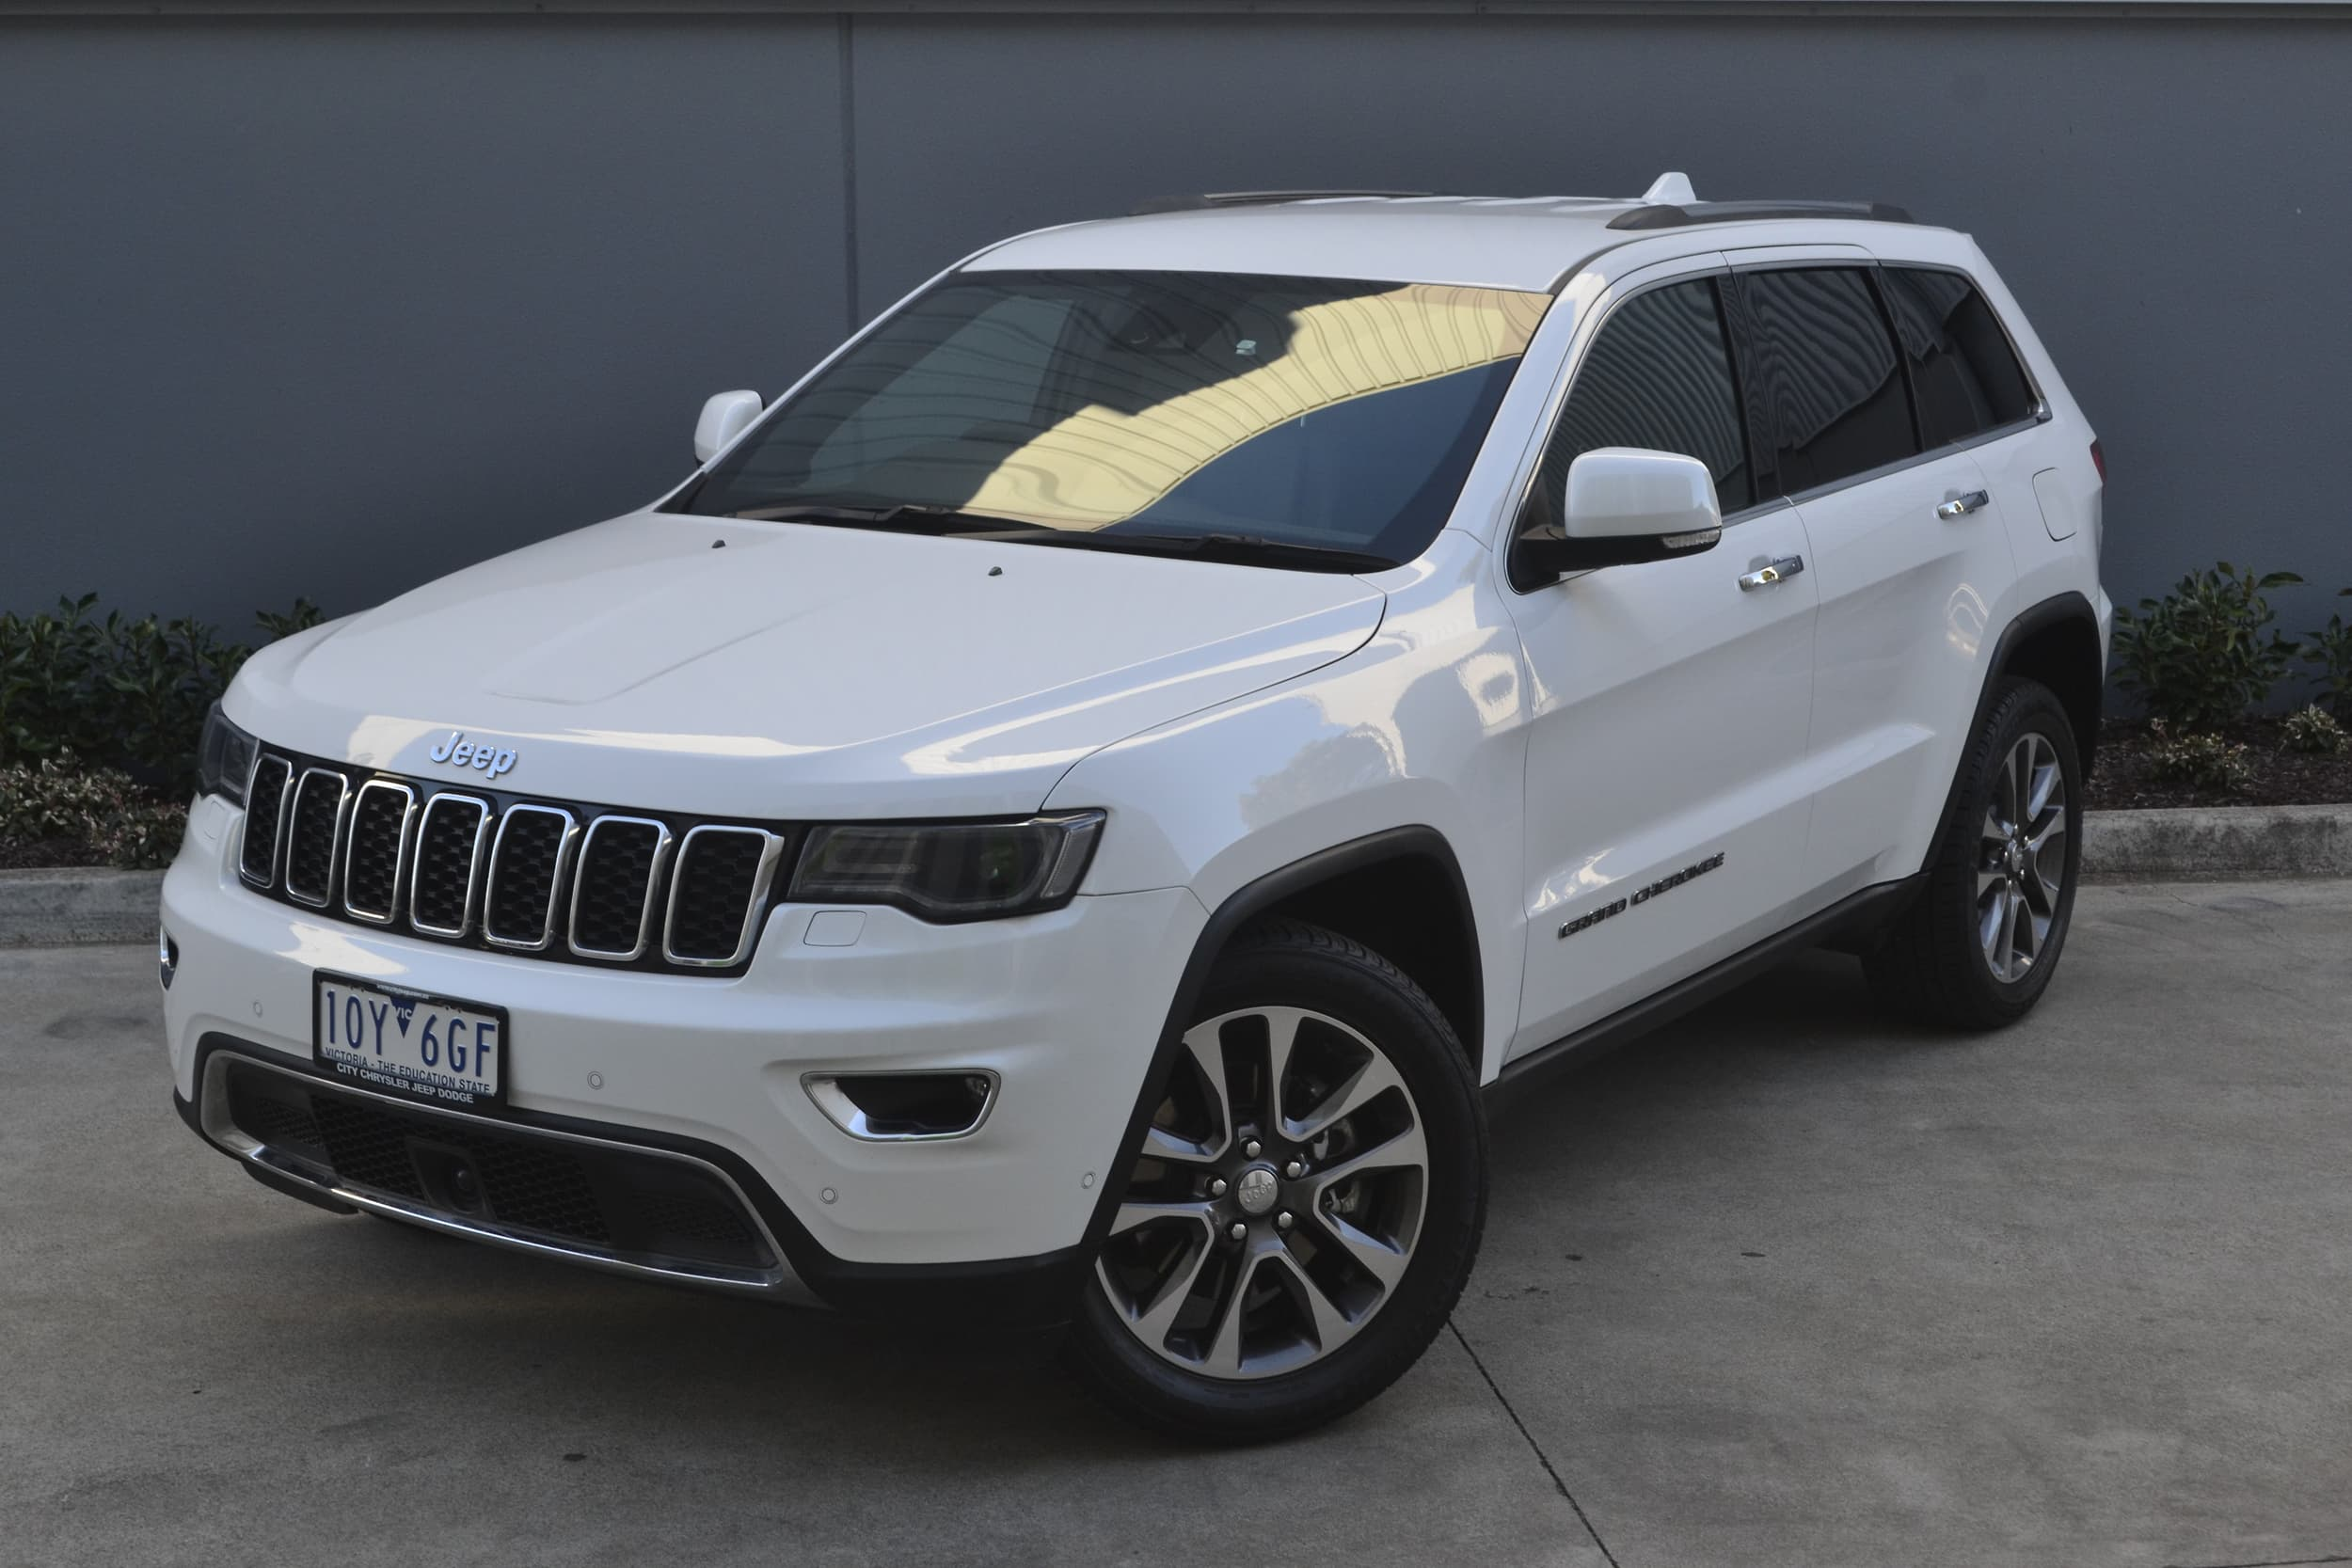 2019 Jeep Grand Cherokee Limited Auto 4x4 MY19 - image 23